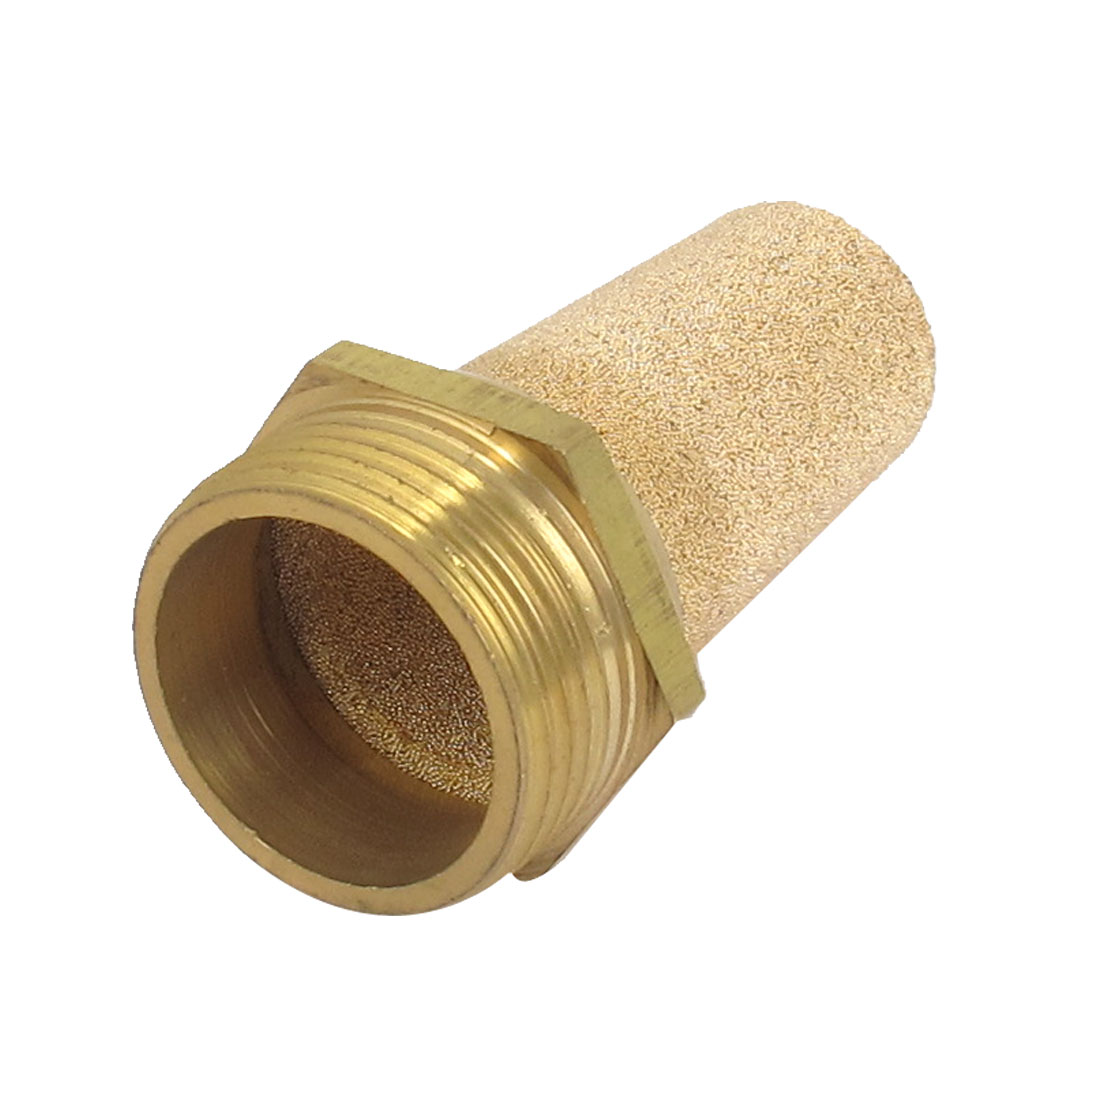 1BSP Thread Fitting Sintered Bronze Pneumatic Air Exhaust Silencer Muffler